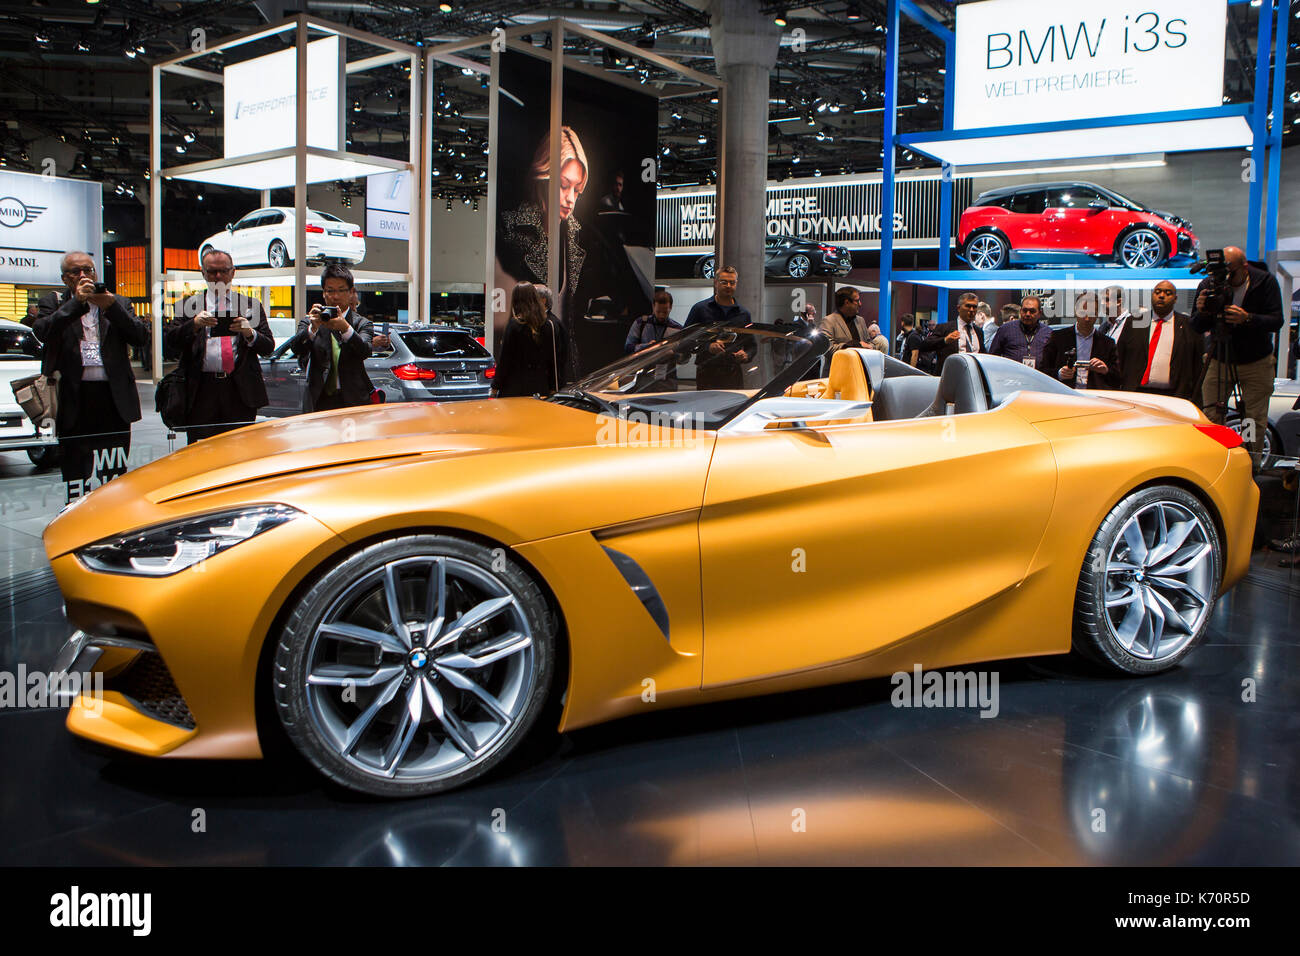 Bmw Roadster Stock Photos Amp Bmw Roadster Stock Images Alamy